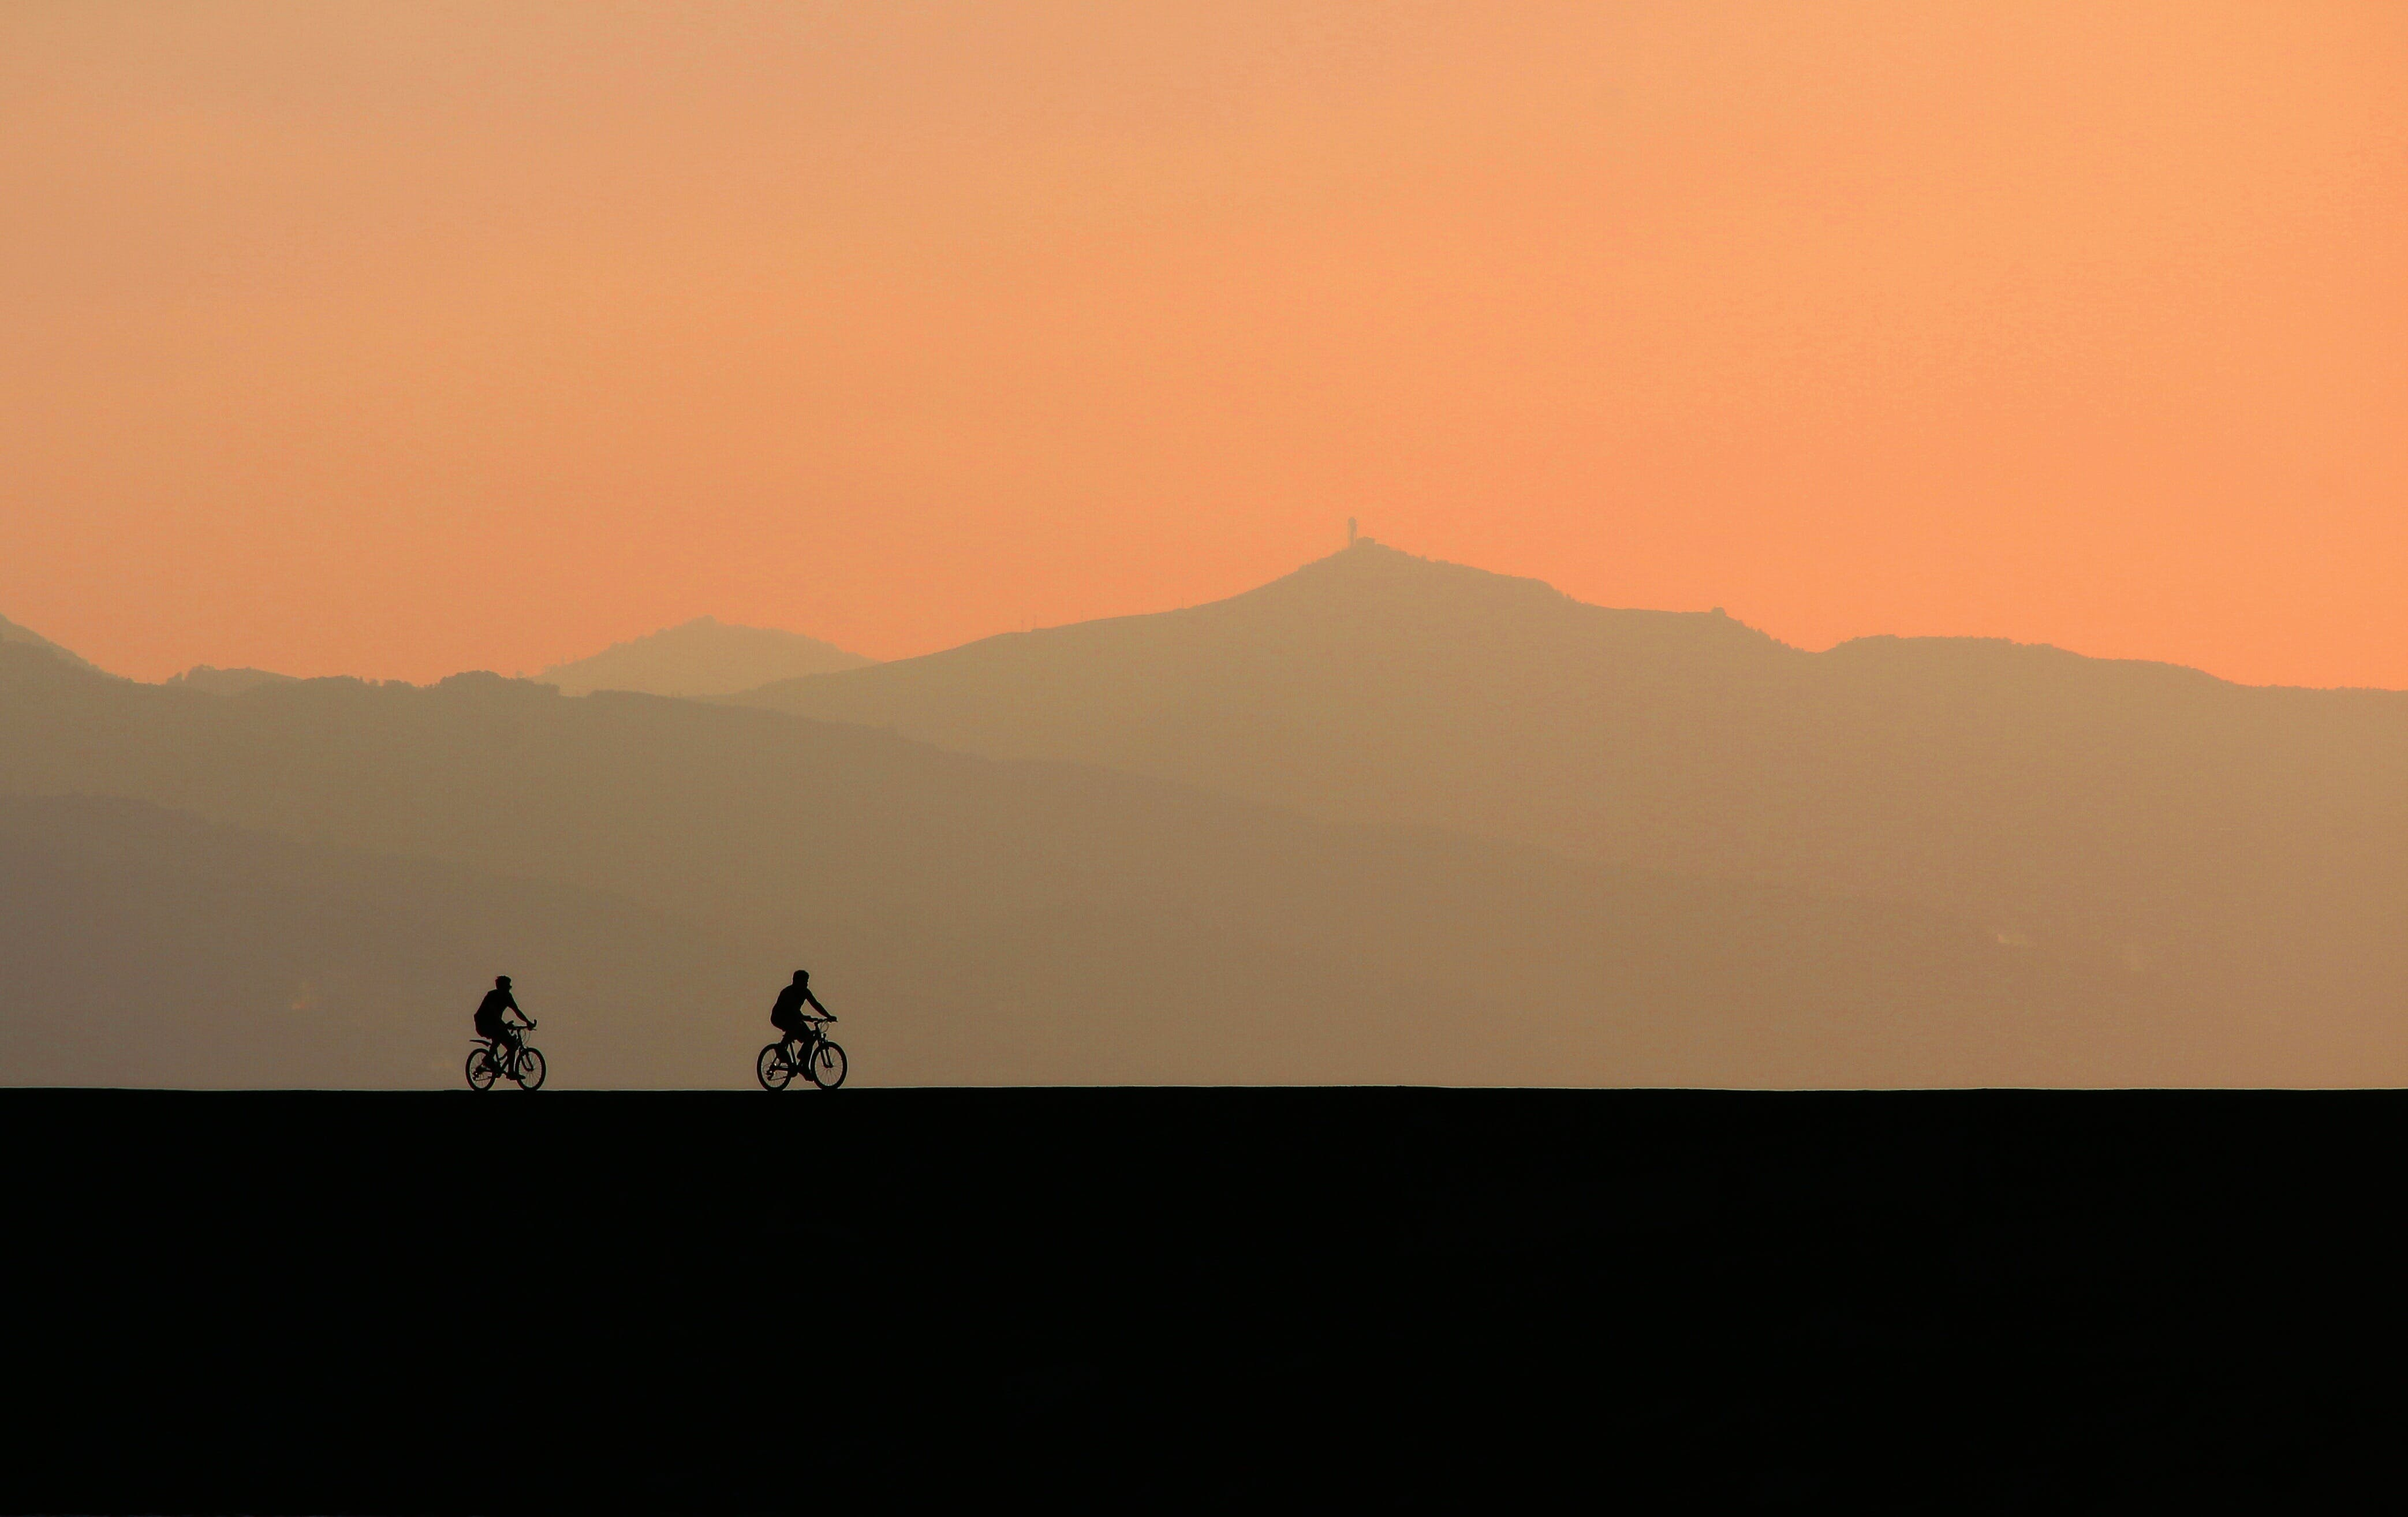 Silhouette Photo of Two Cyclists